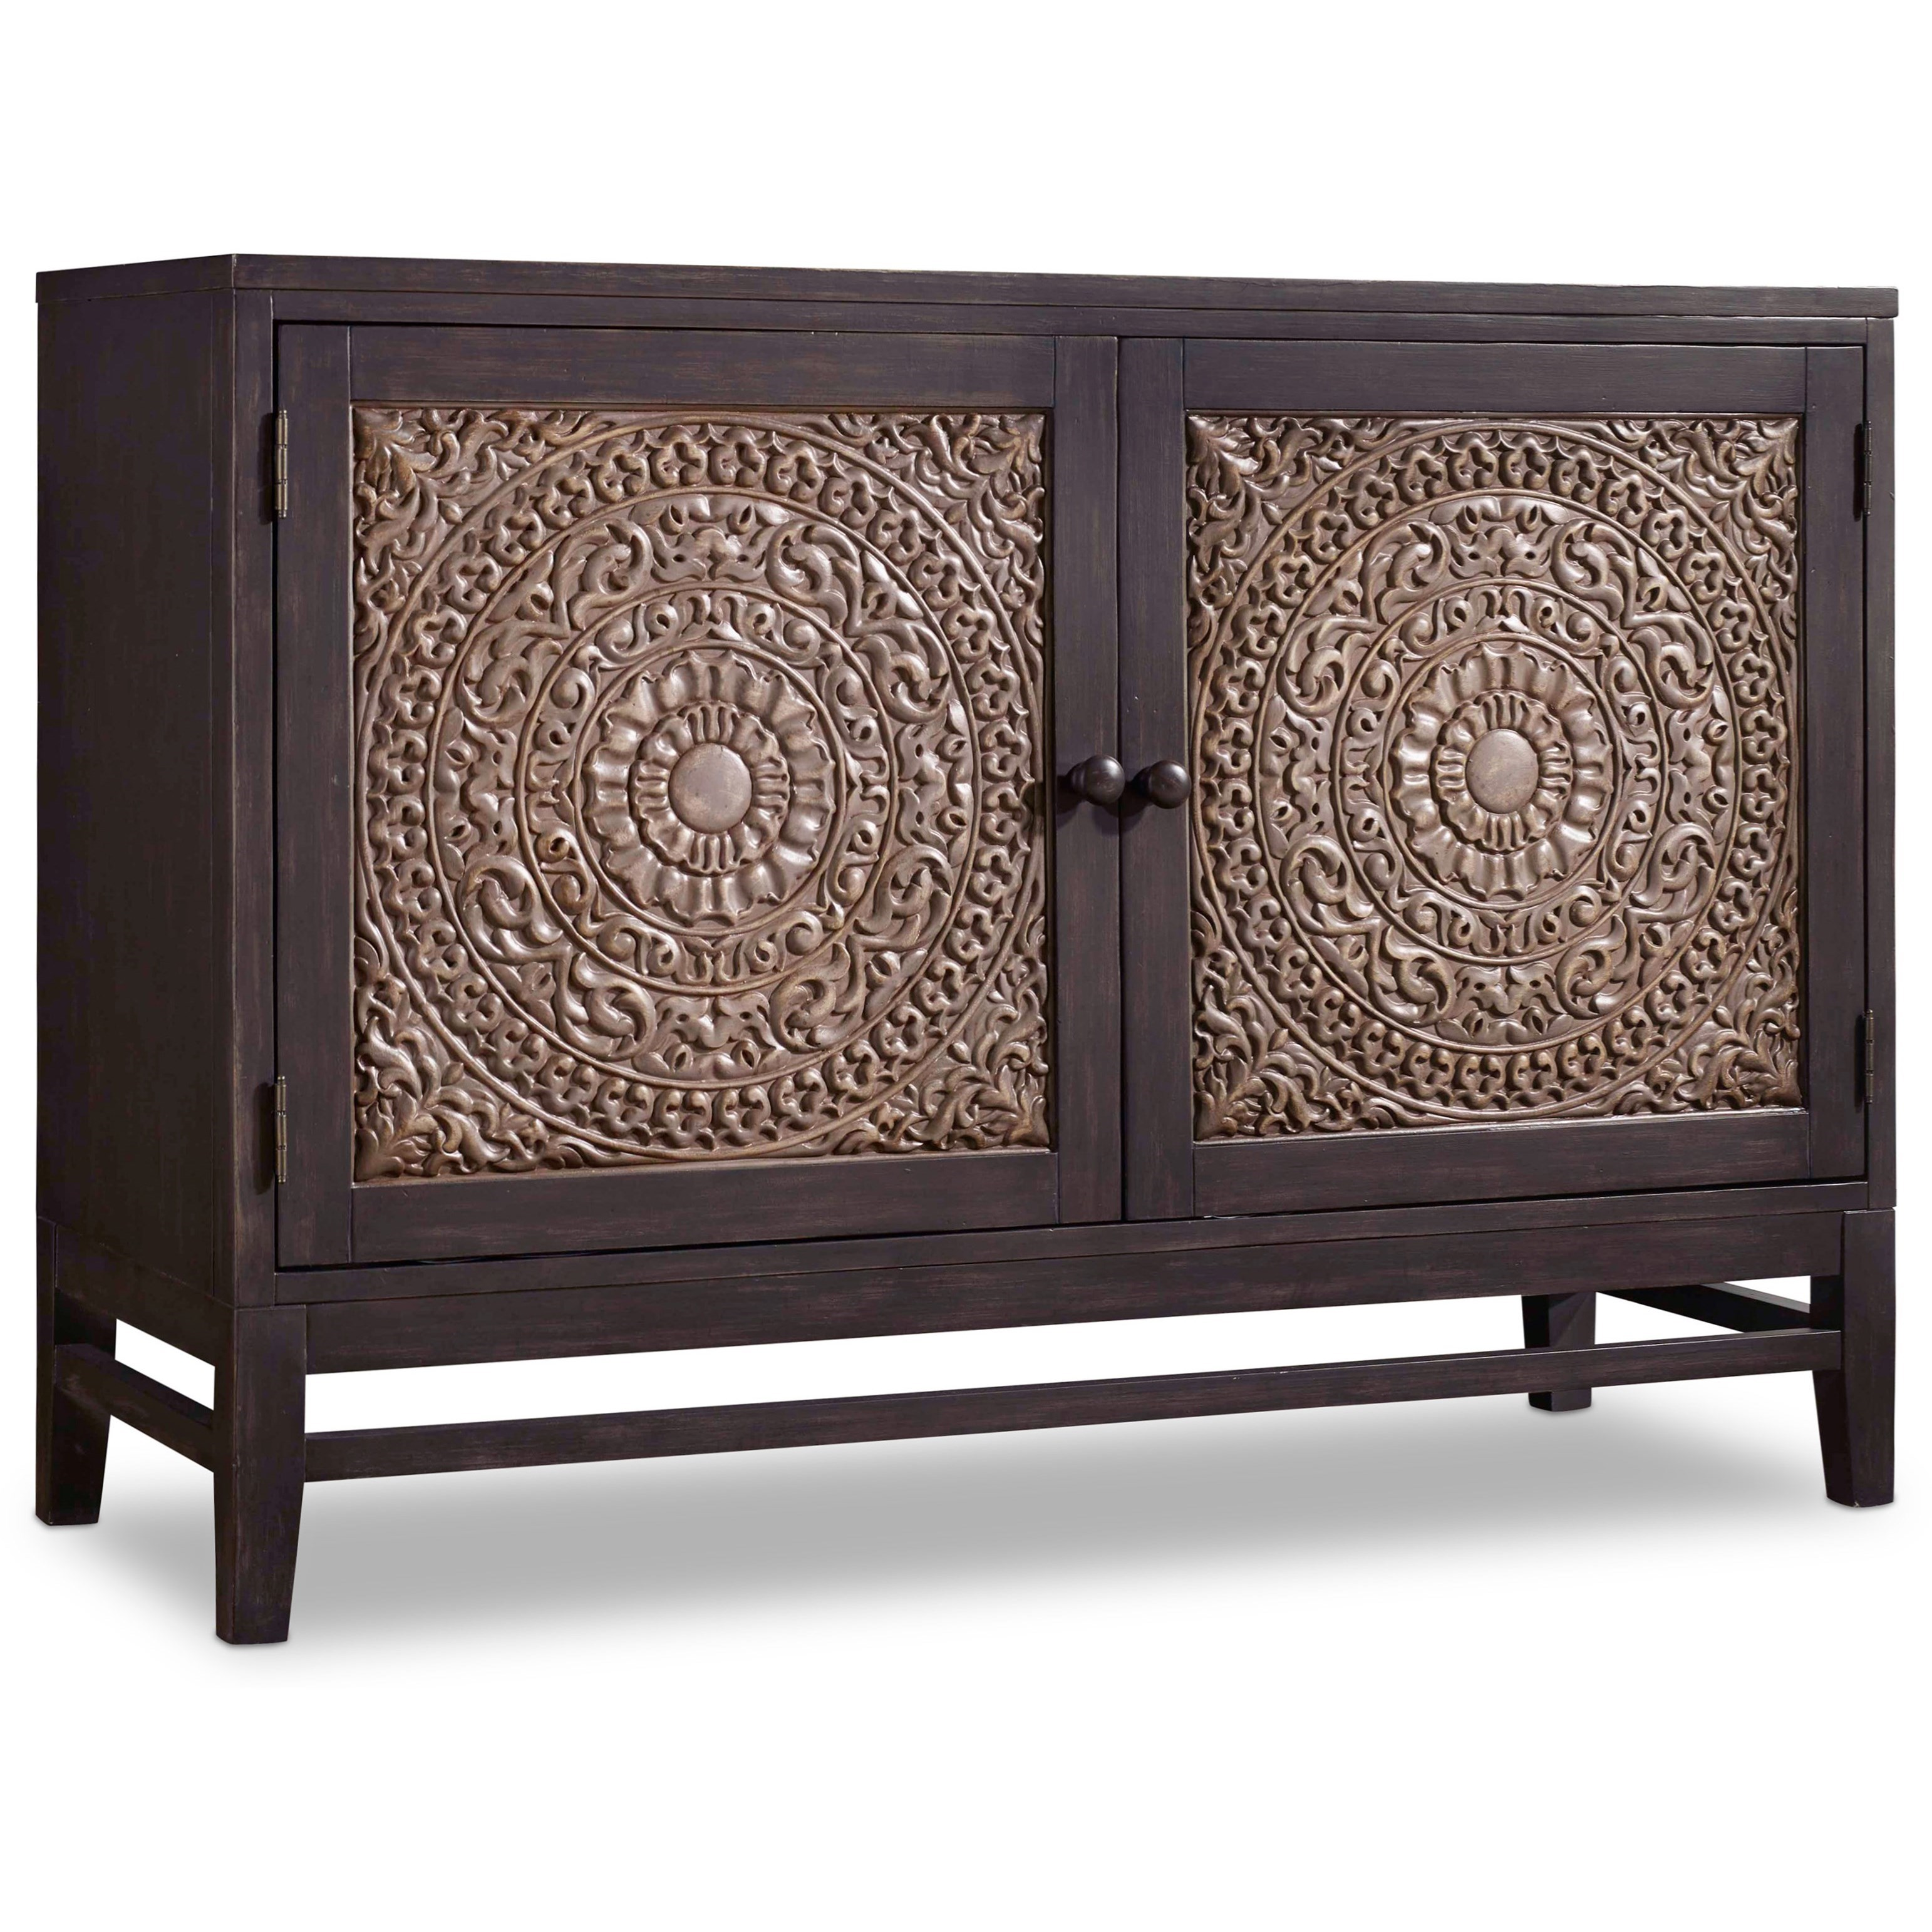 Hooker Furniture Mélange Matisette Chest - Item Number: 638-85216